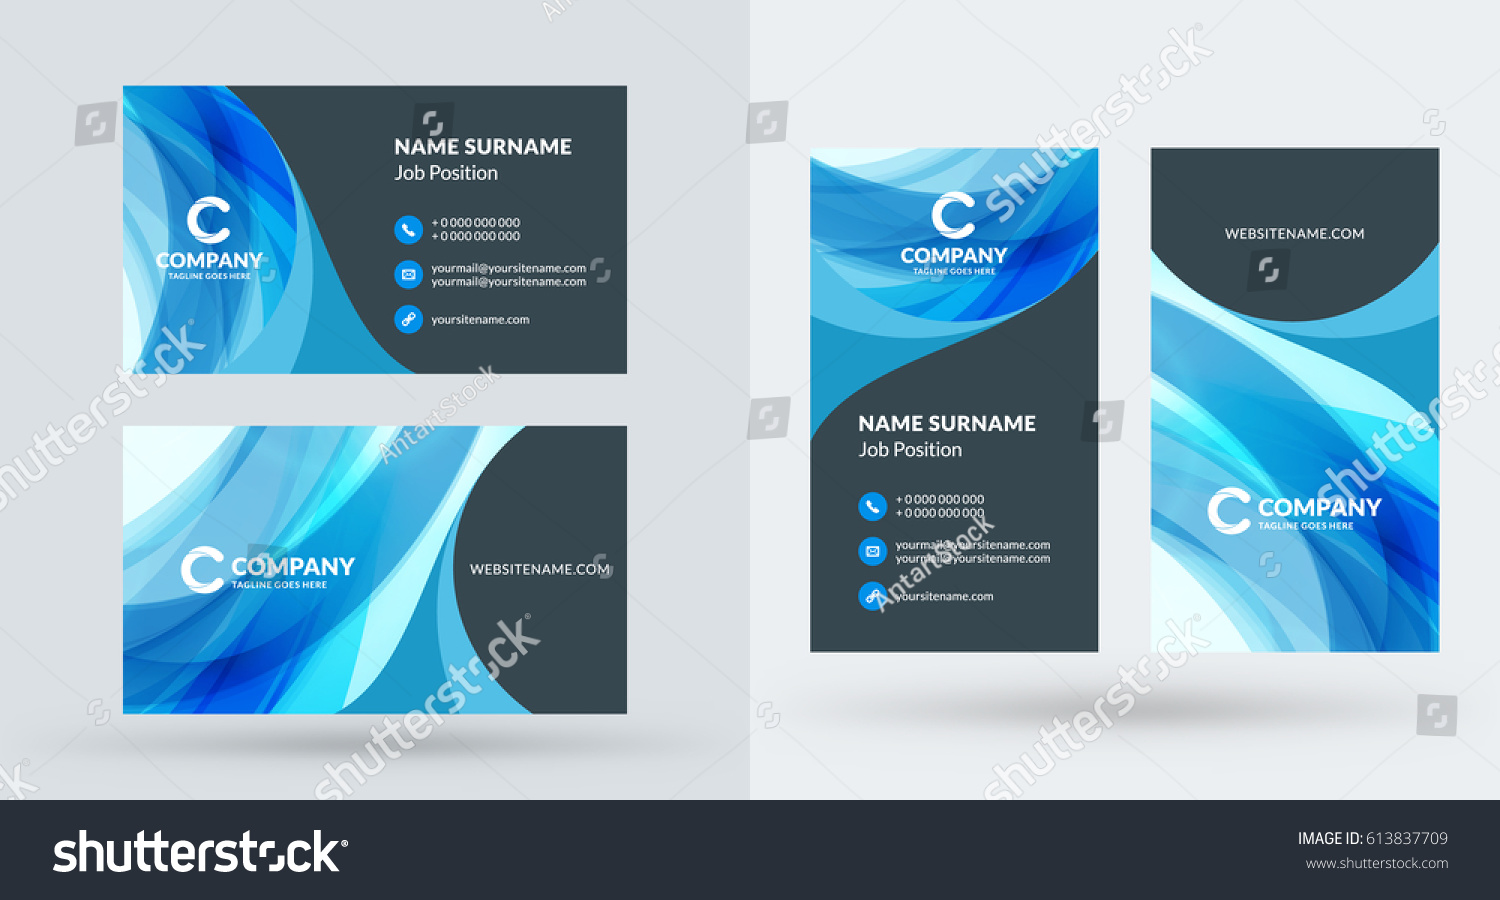 Doublesided creative business card template portrait stock vector double sided creative business card template portrait and landscape orientation horizontal and vertical accmission